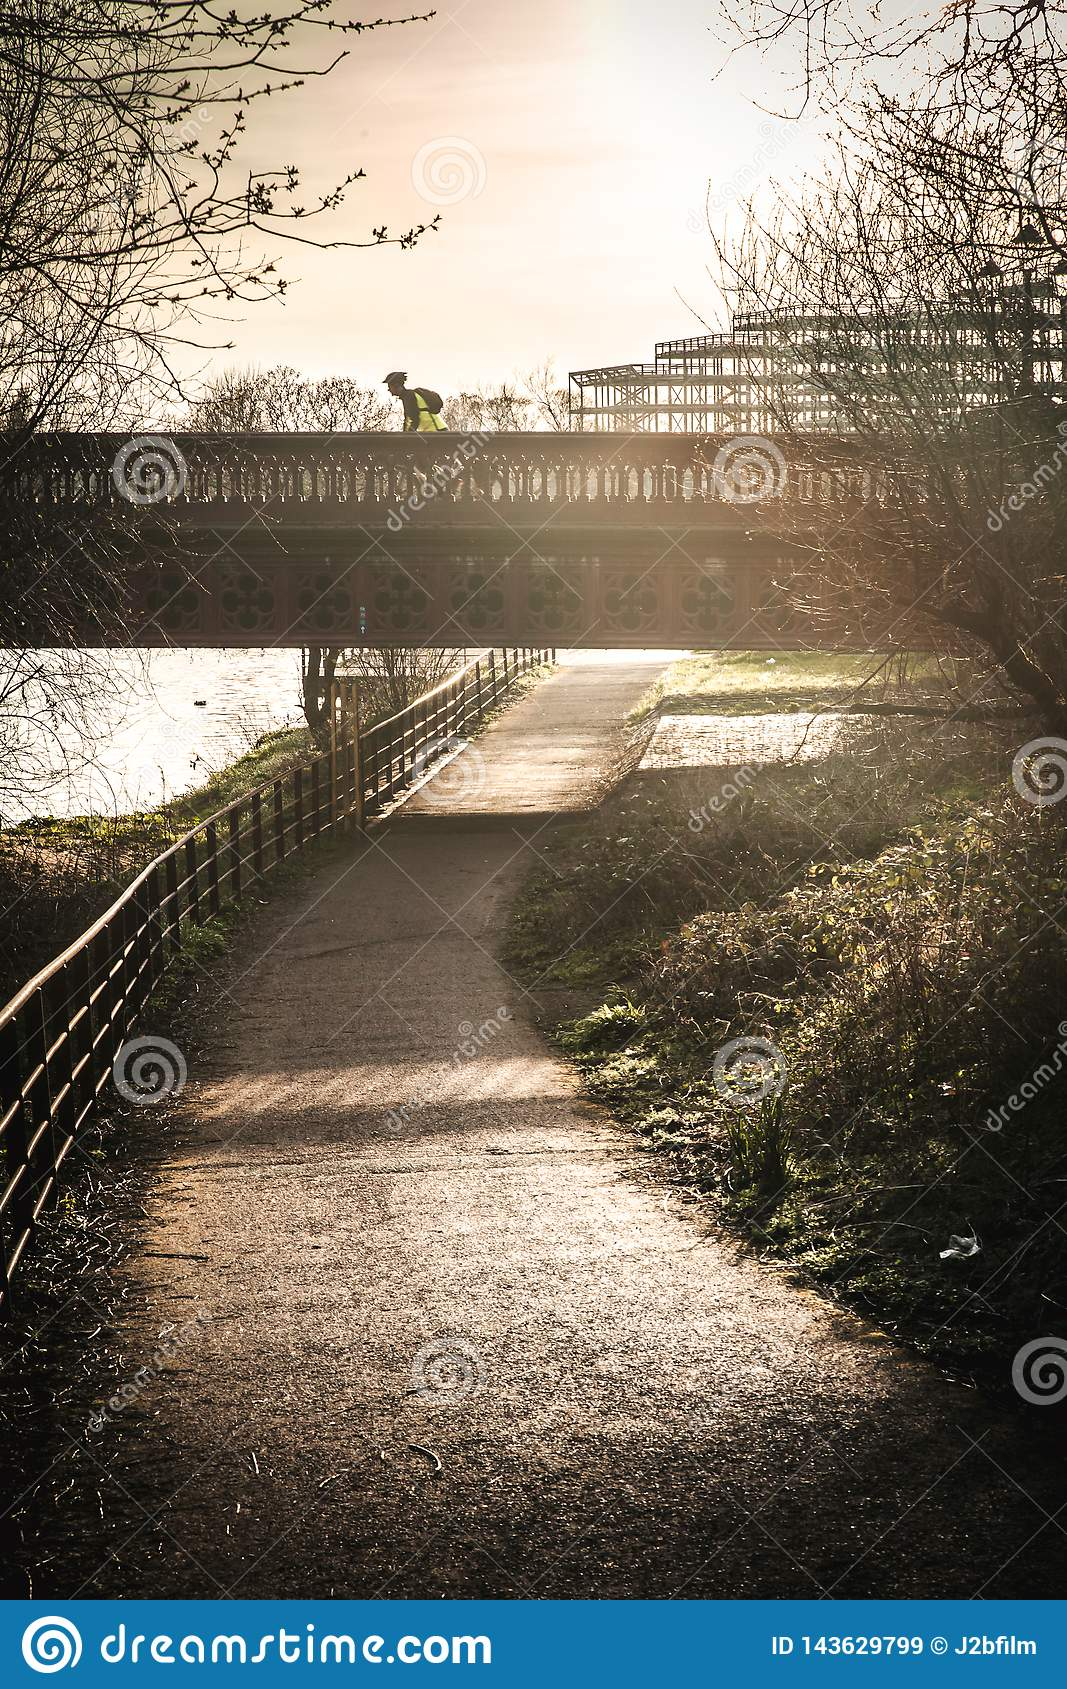 Bicycle and walking path in park Glasgow